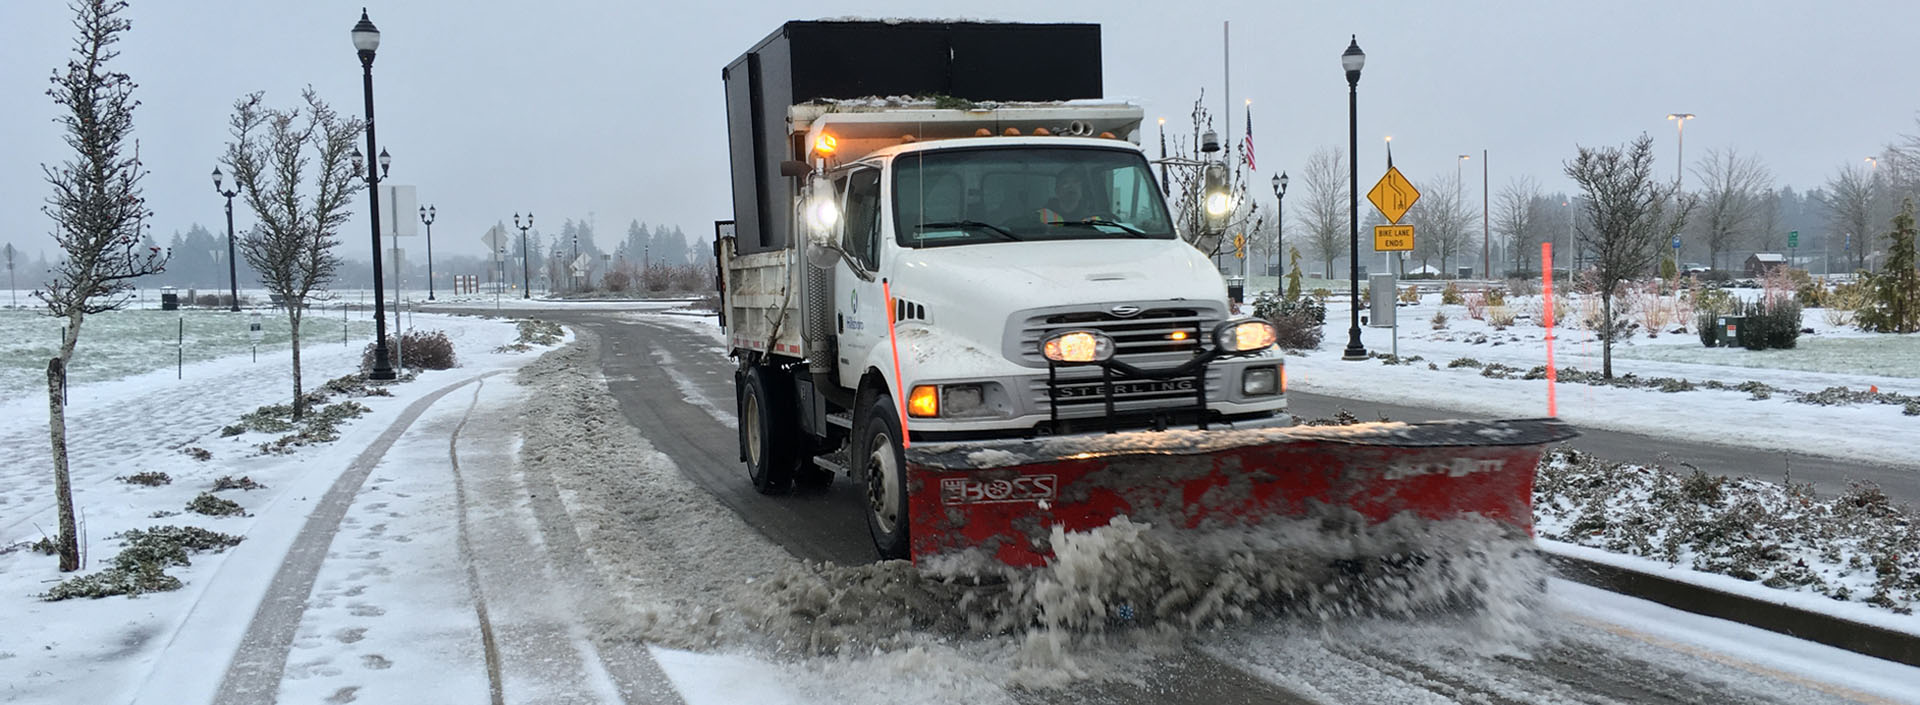 Image of snow plow on a Hillsboro street